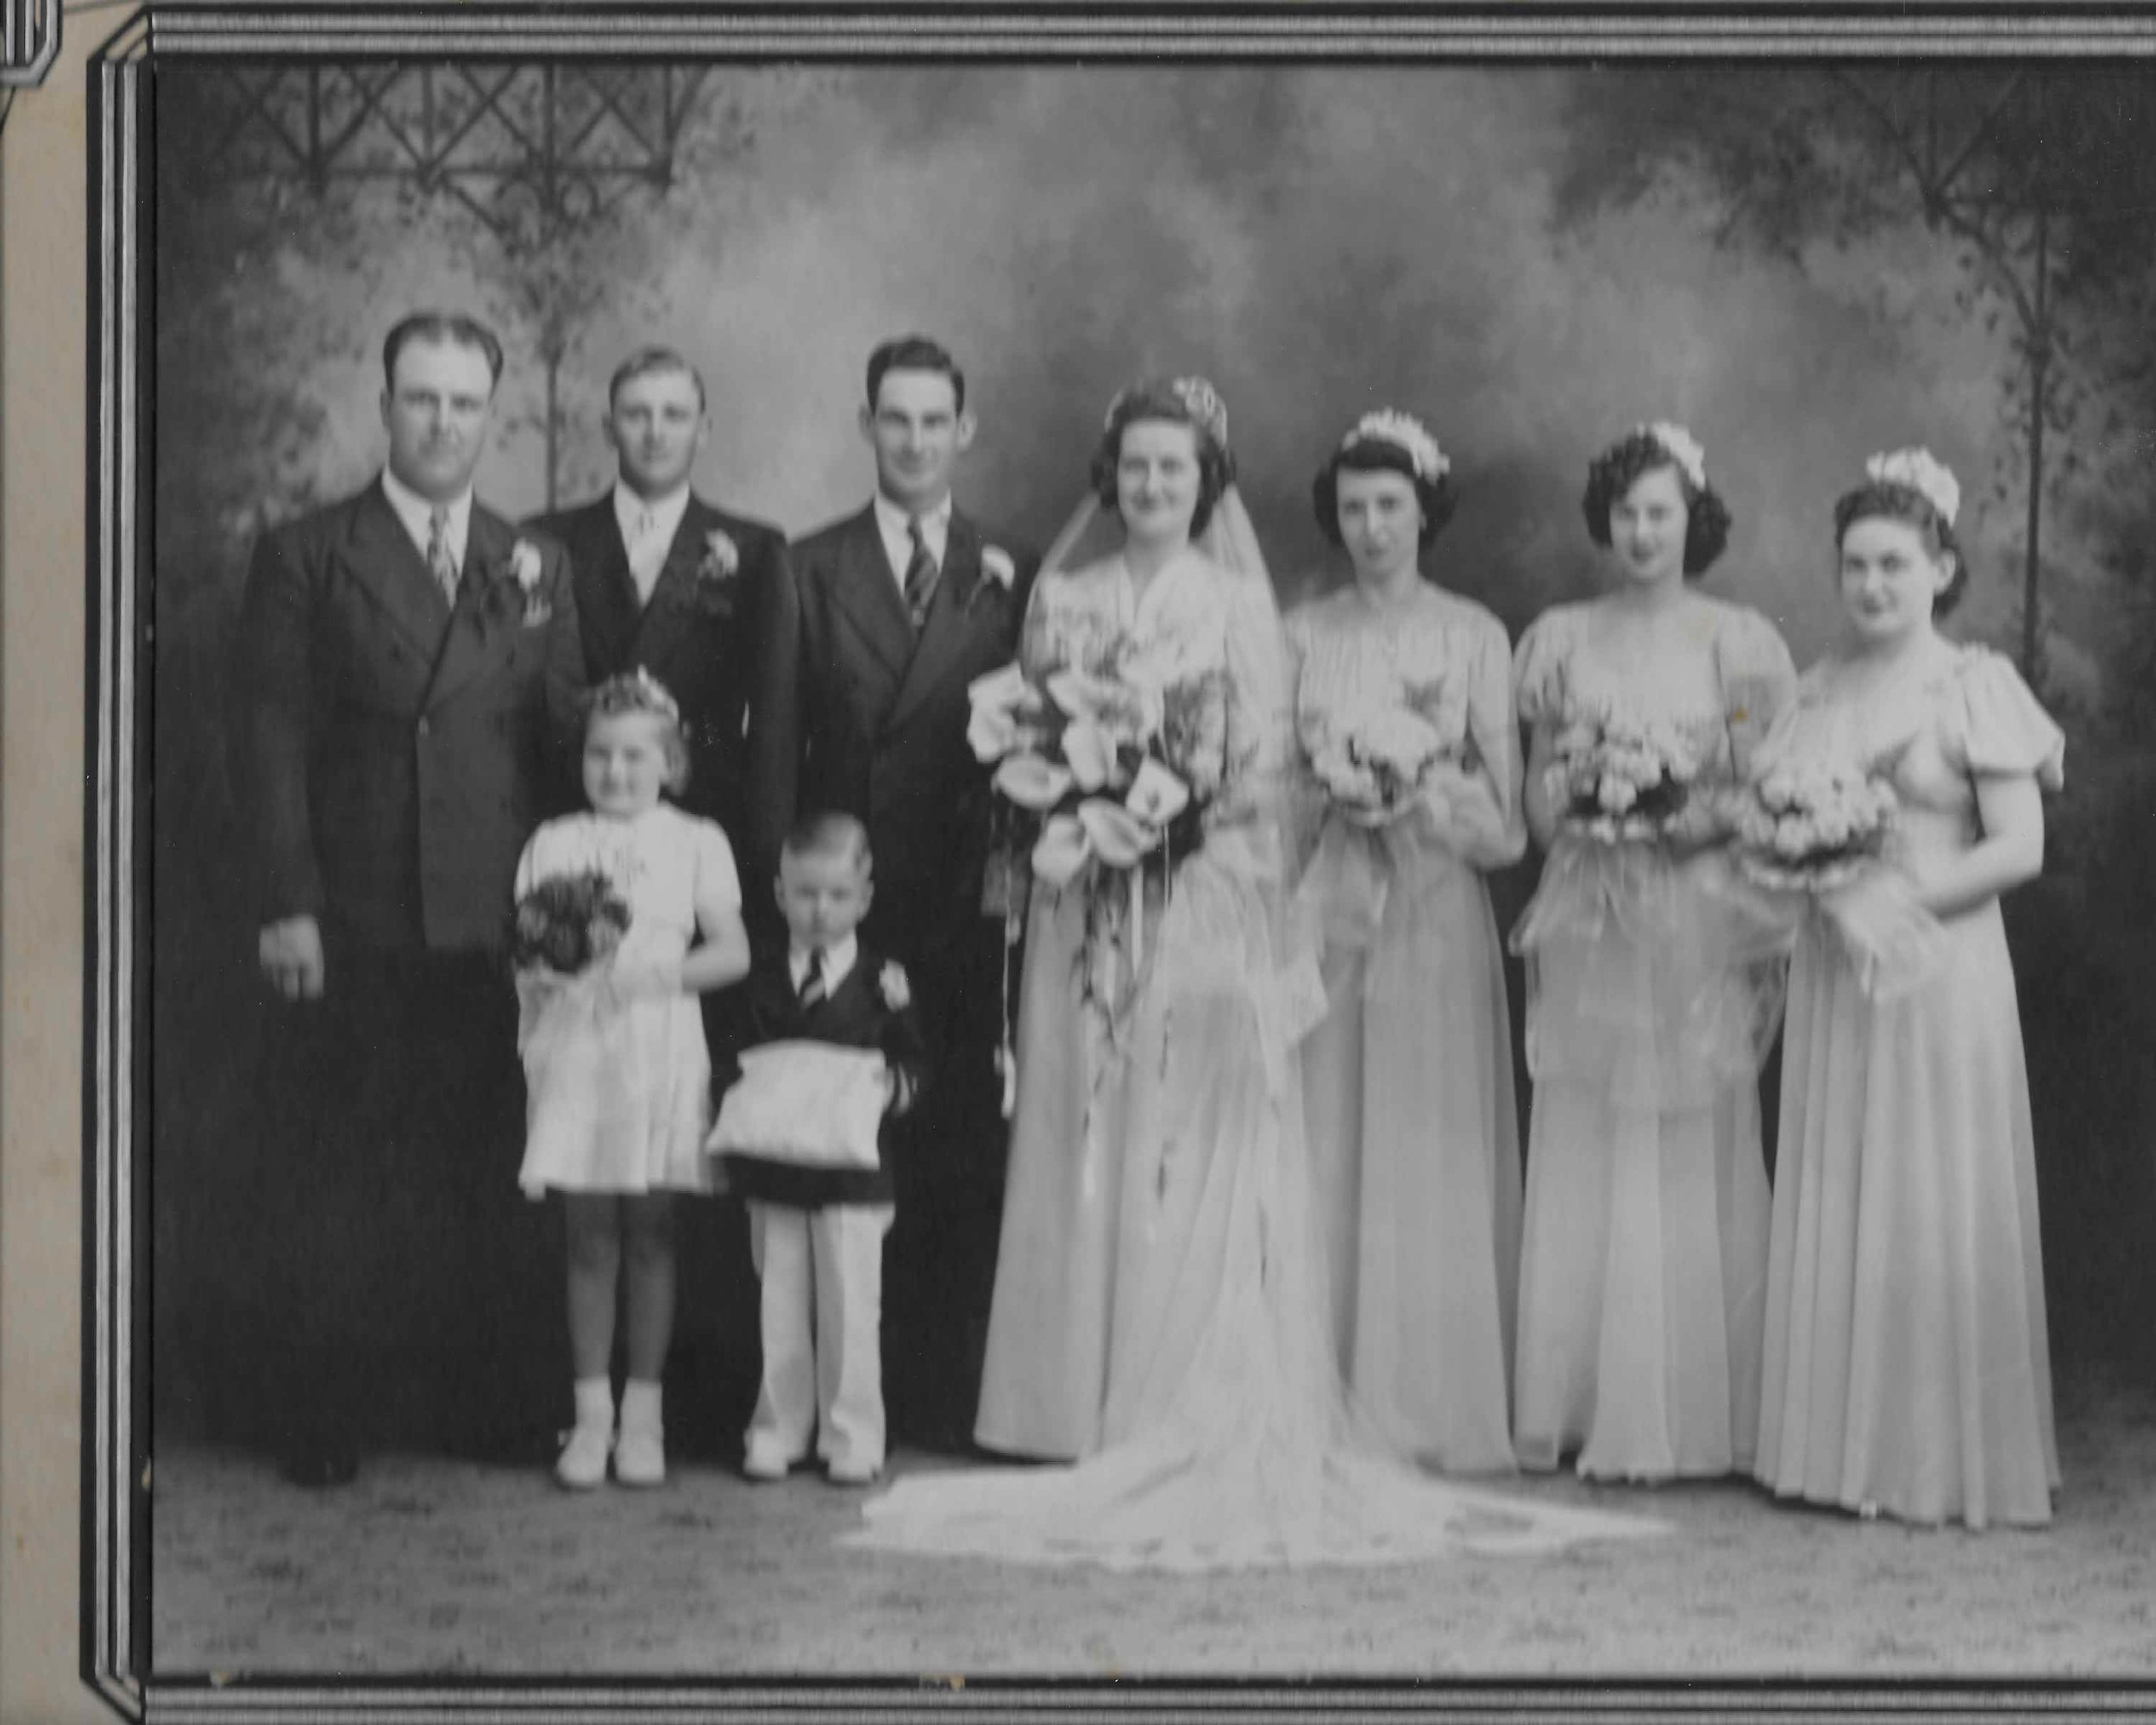 Grandma's wedding (1941). Not a chicken feather in site!